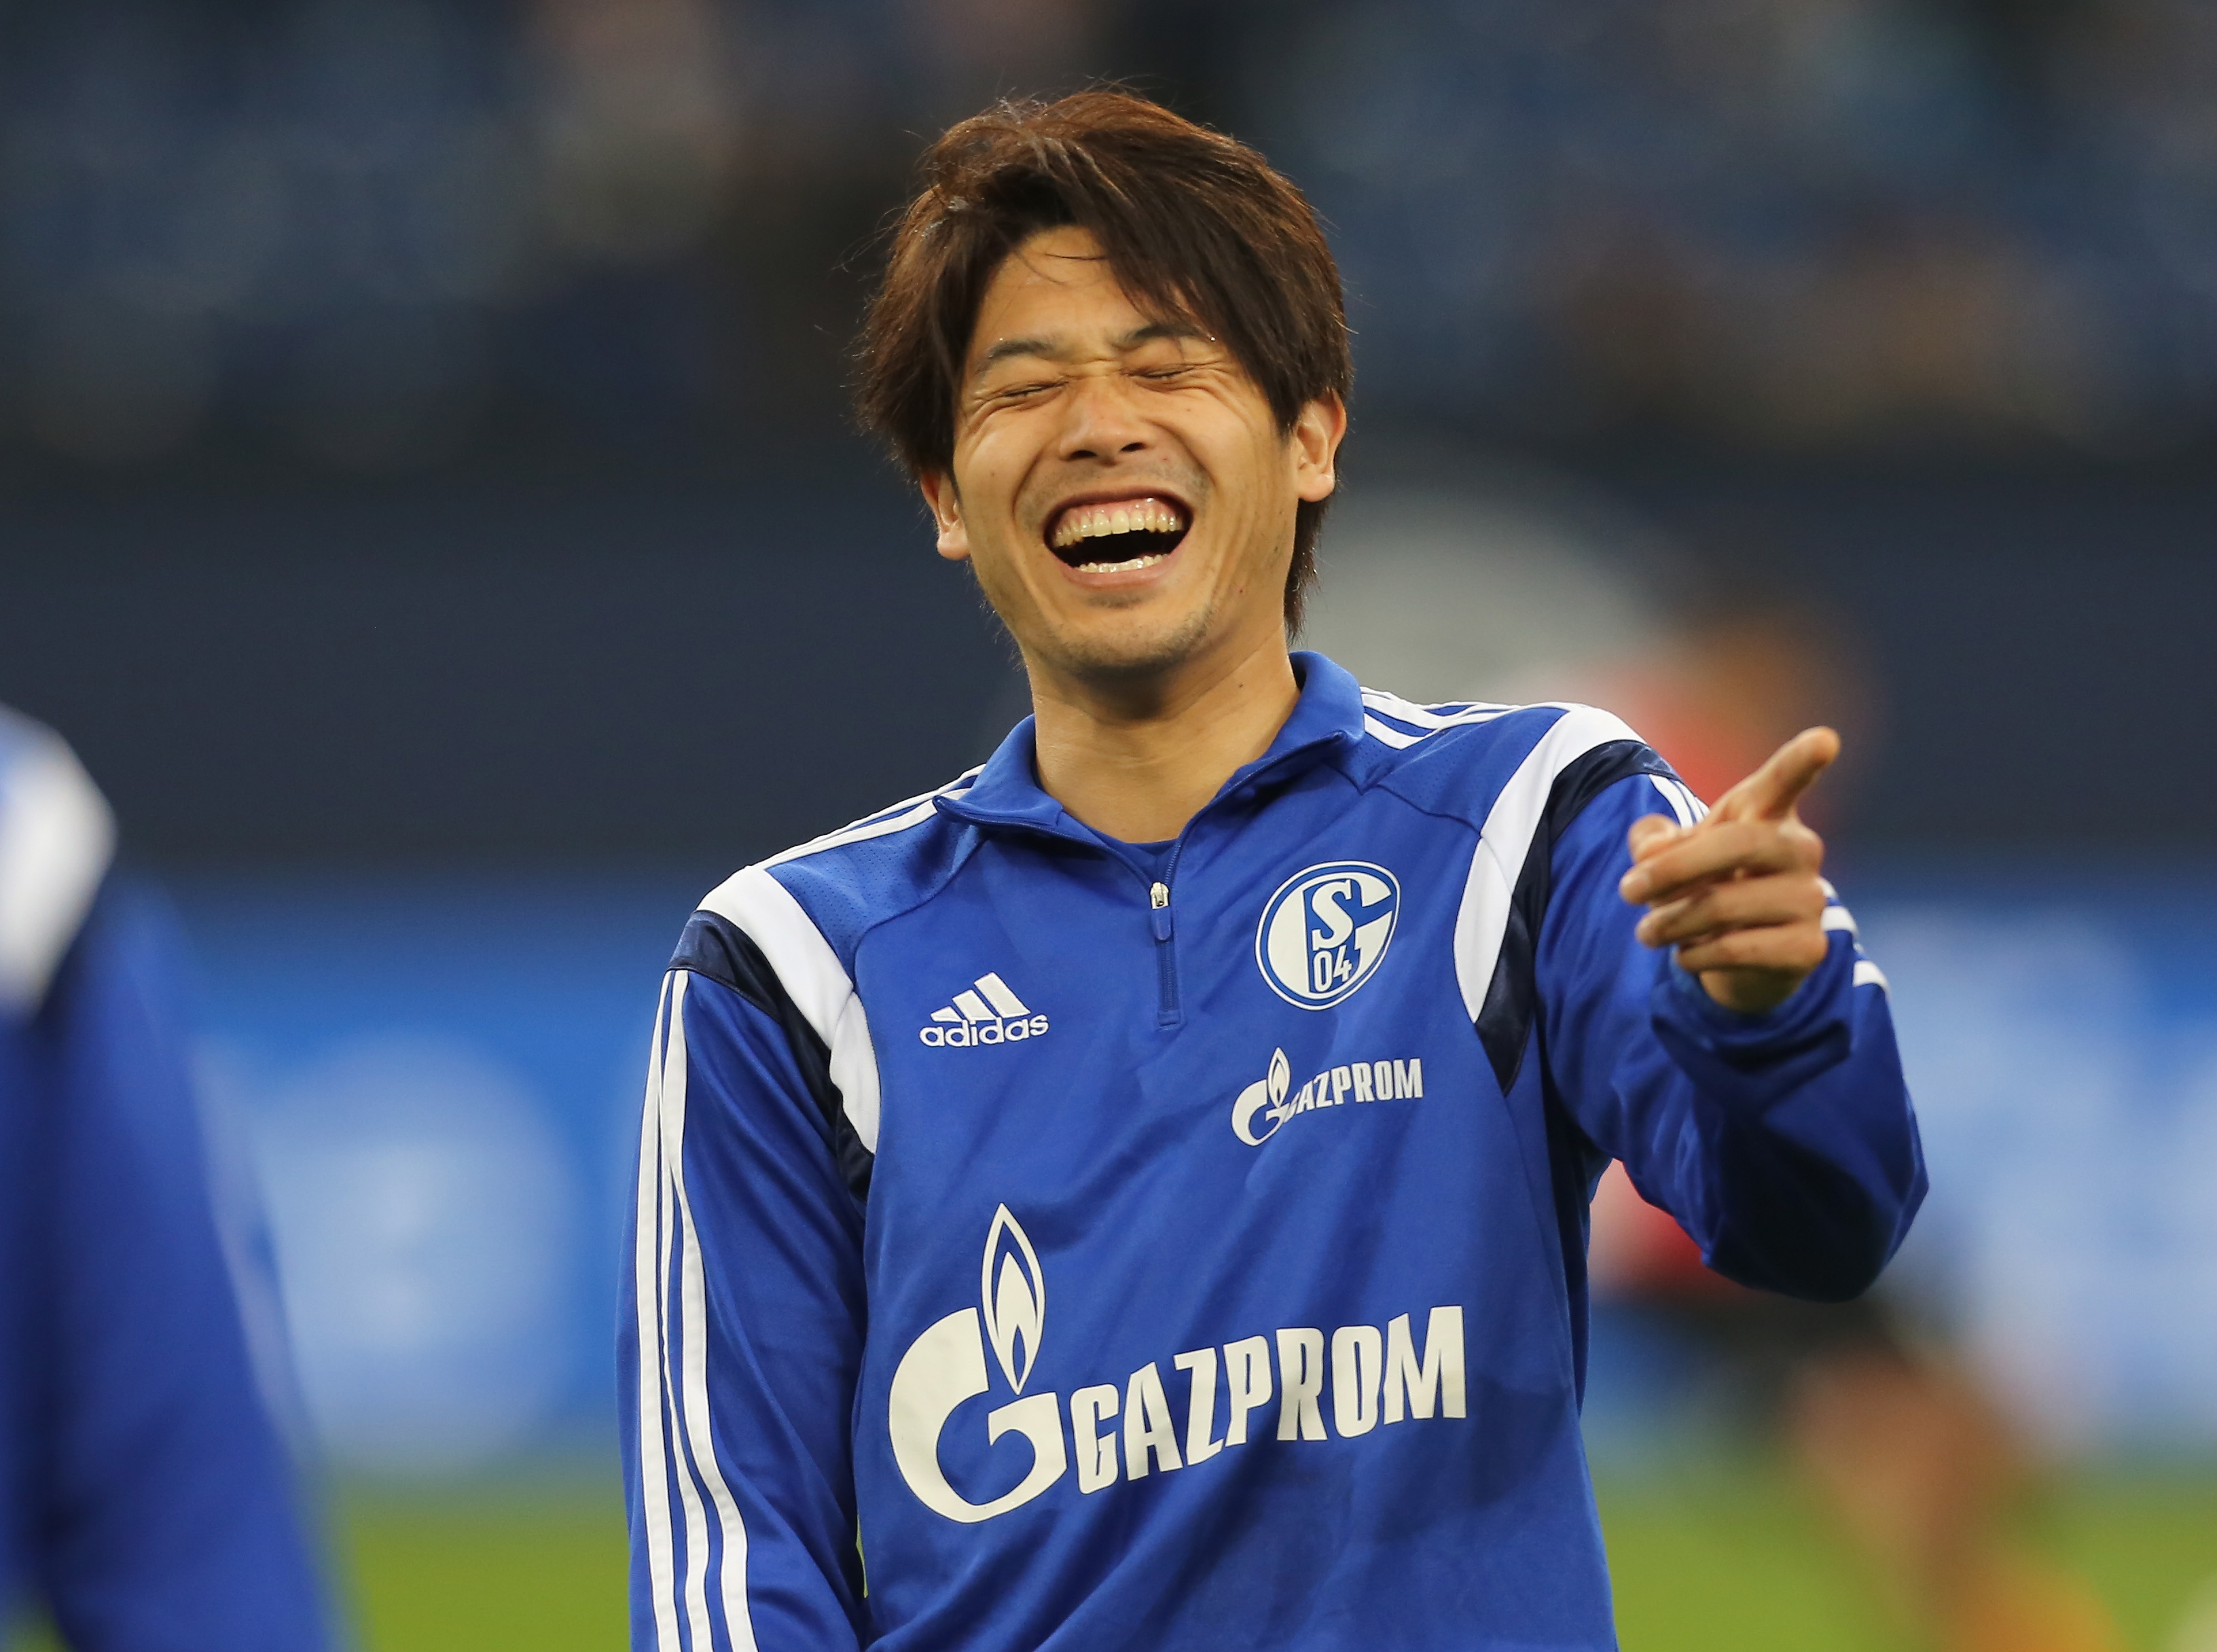 GELSENKIRCHEN, GERMANY - APRIL 11:  Atsuto Uchida of Schalke laughs during the warm-up at the Bundesliga match between Schalke 04 and SC Freiburg at Veltins Arena on April 11, 2015 in Gelsenkirchen, Germany.  (Photo by Juergen Schwarz/Bongarts/Getty Images)